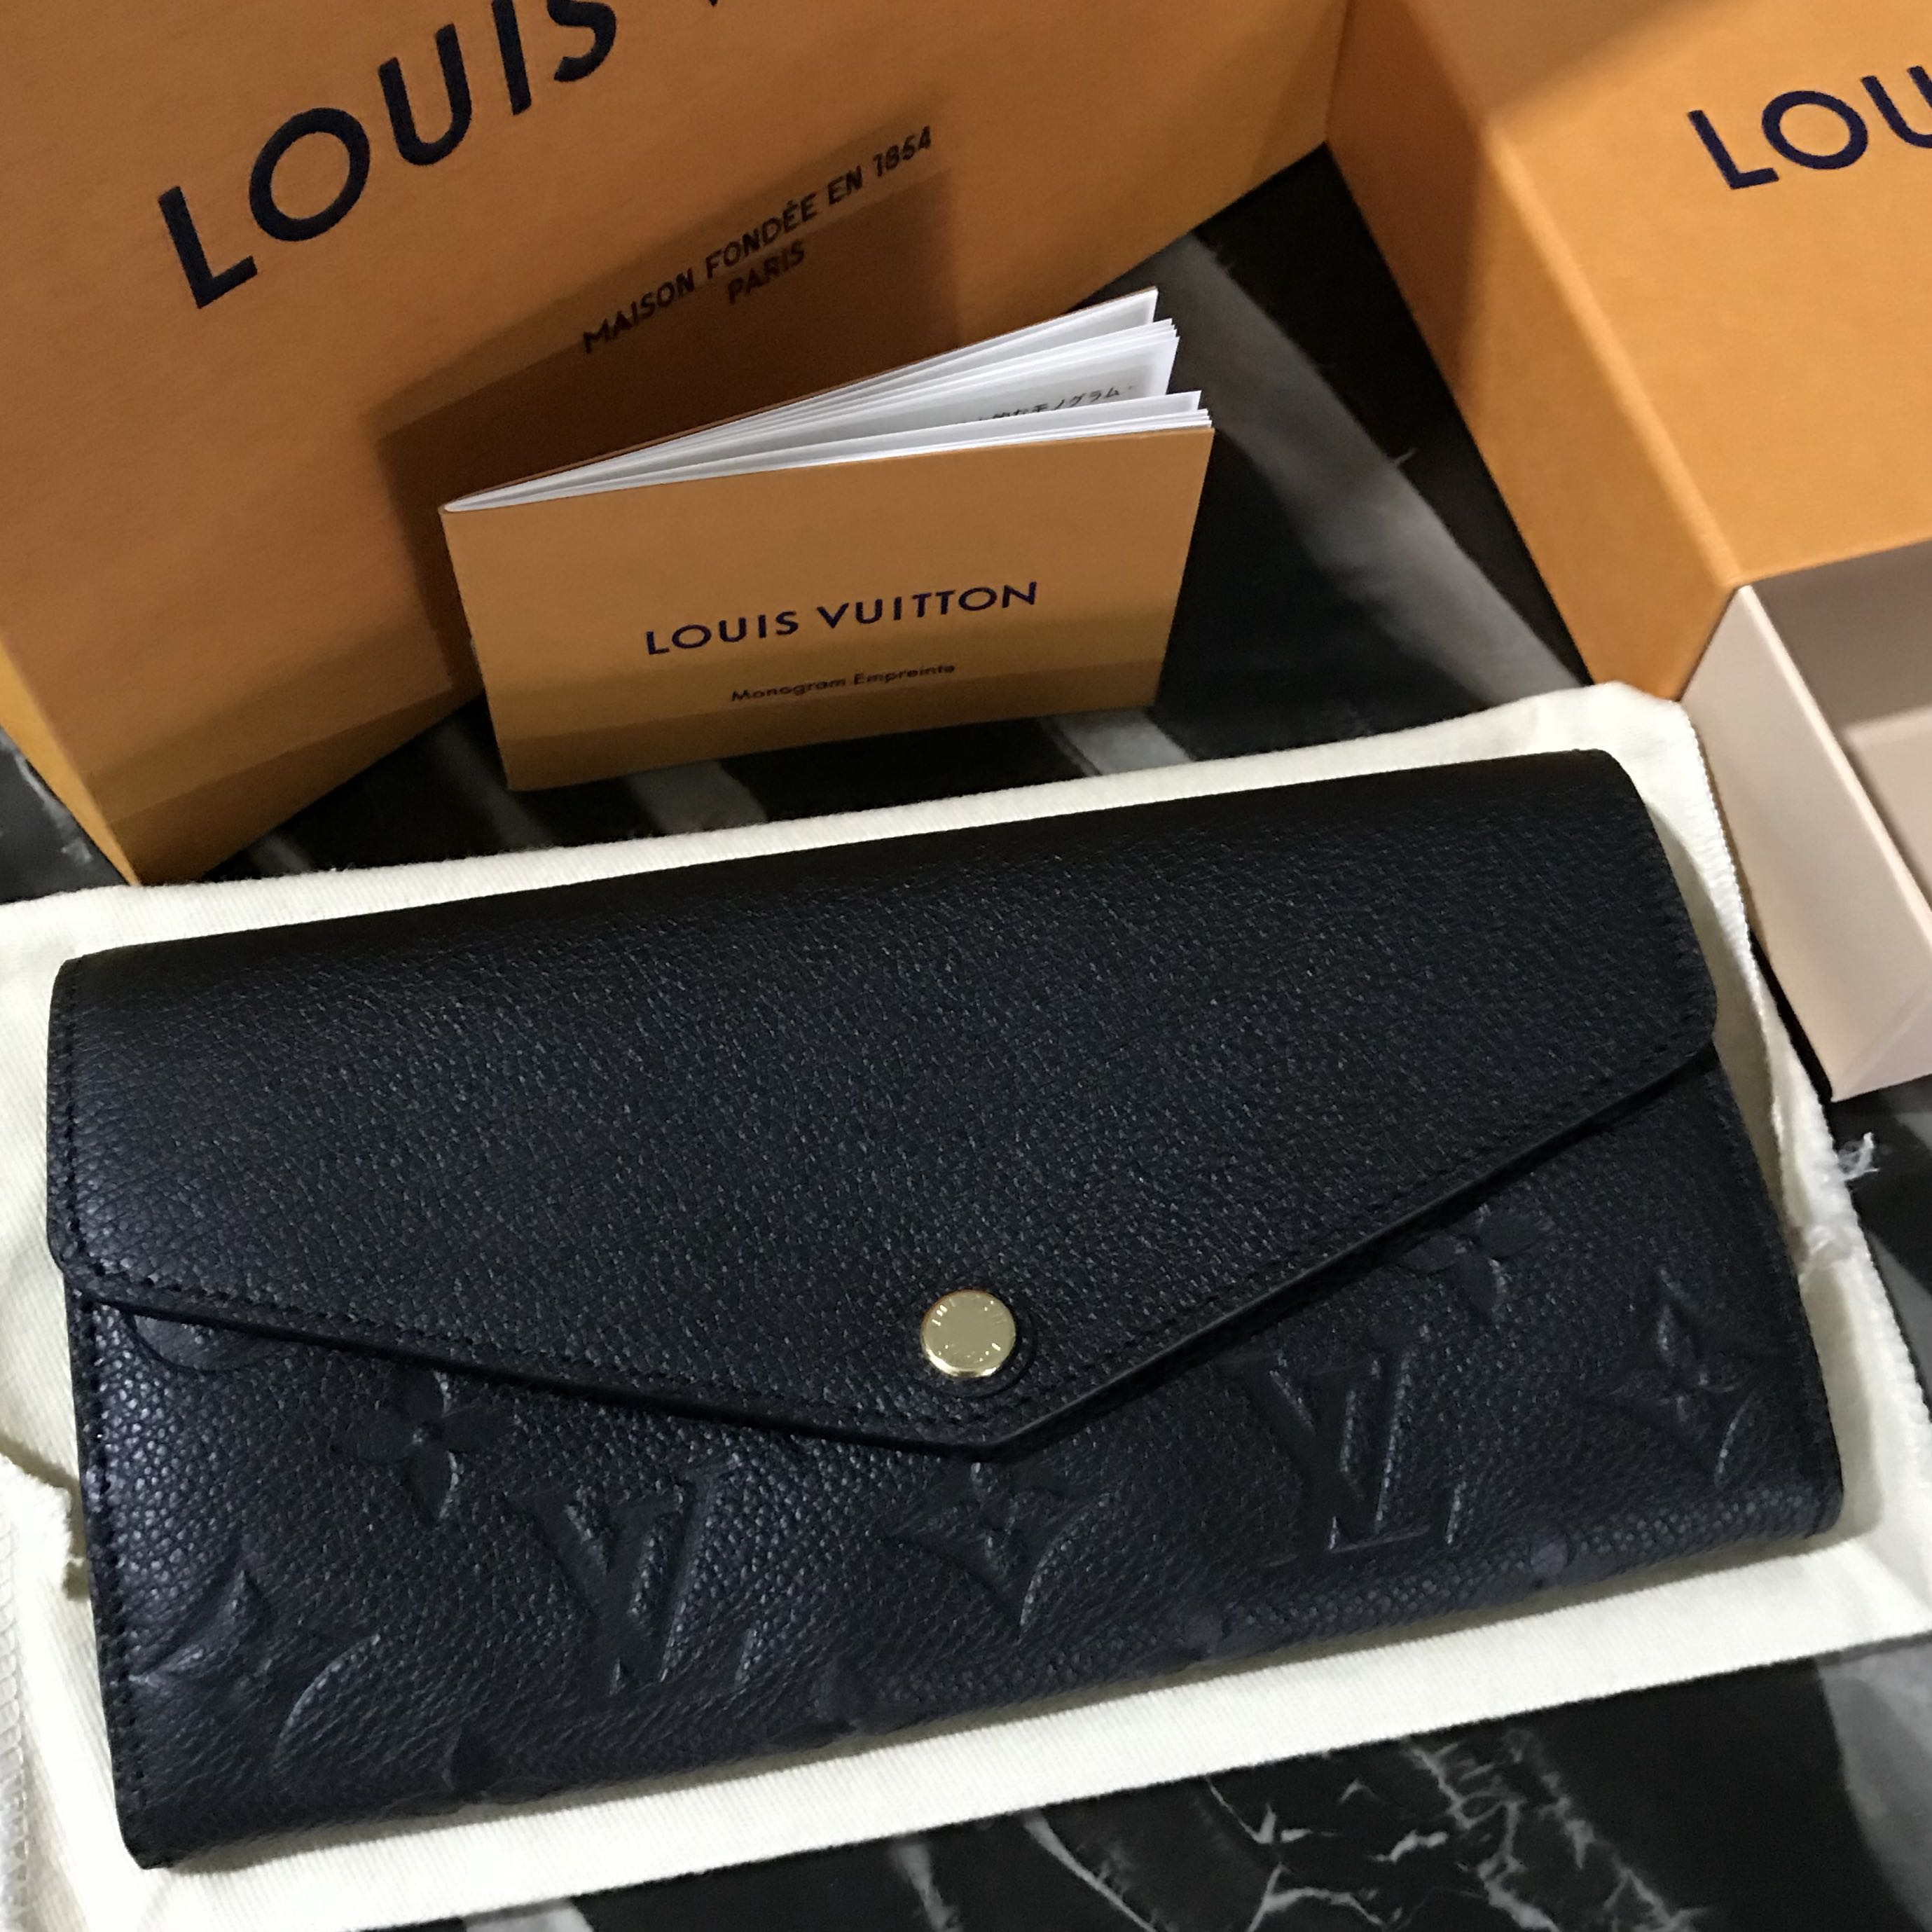 20b39eceafea Home · Luxury · Bags   Wallets · Wallets. photo photo ...